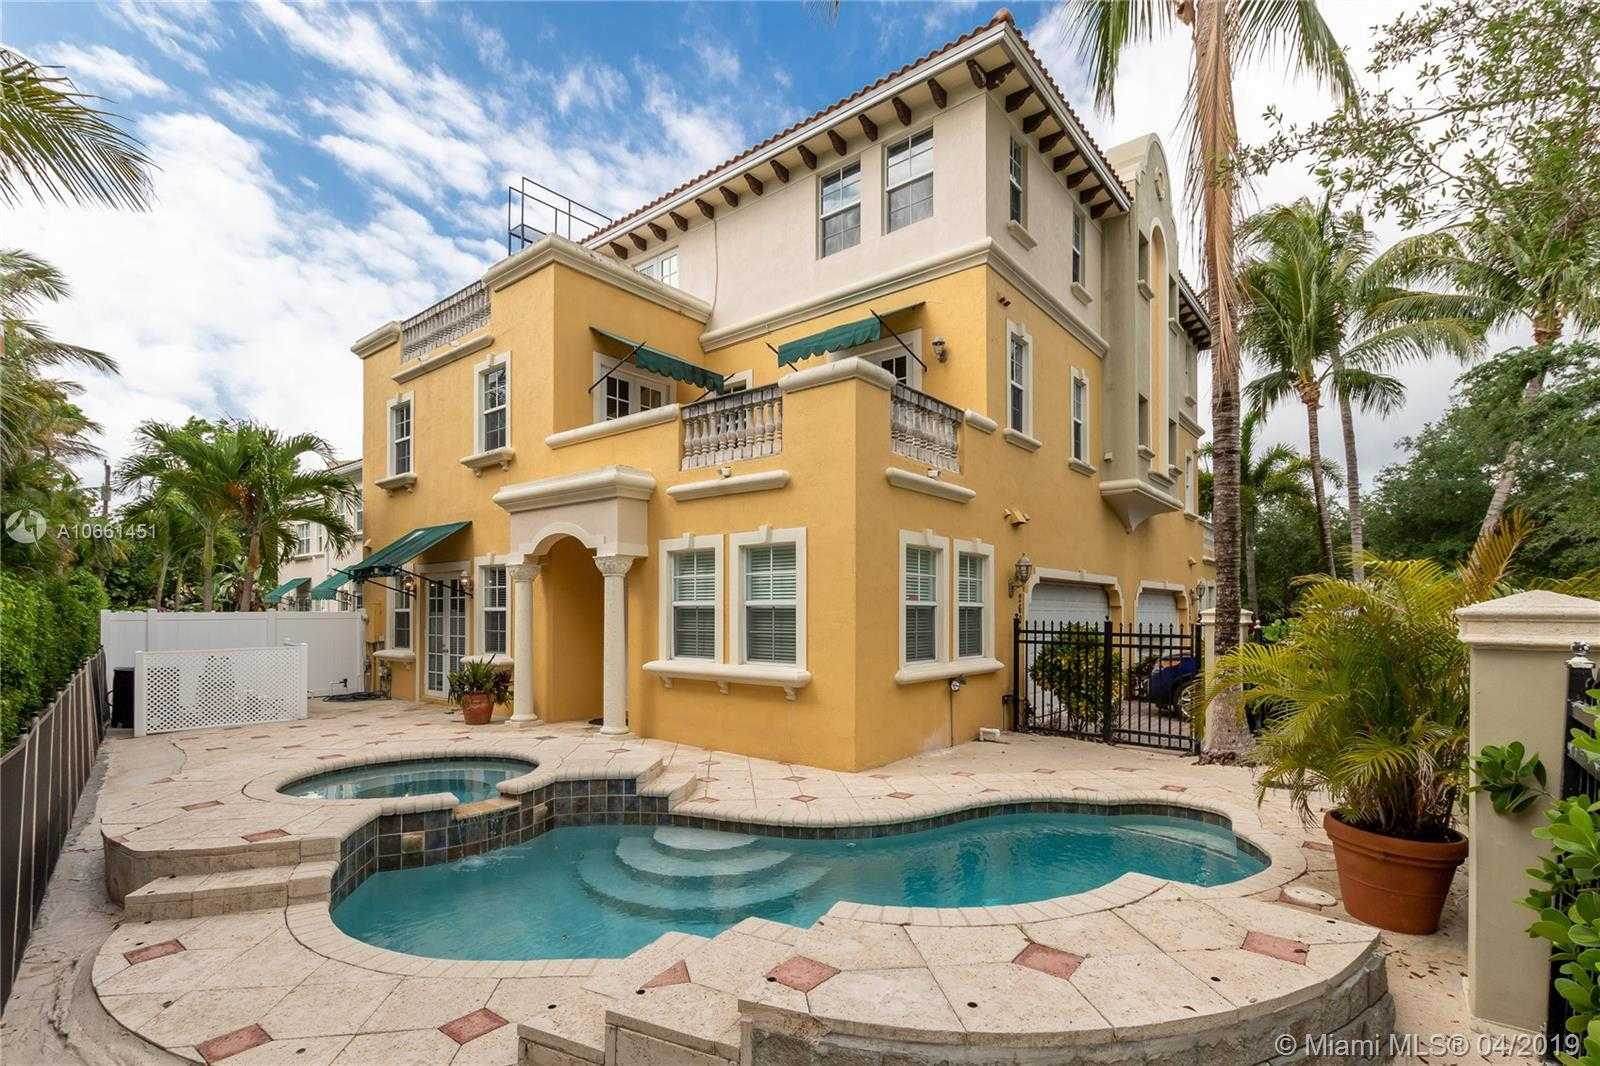 $750,000 - 4Br/4Ba -  for Sale in Coral Ridge, Fort Lauderdale